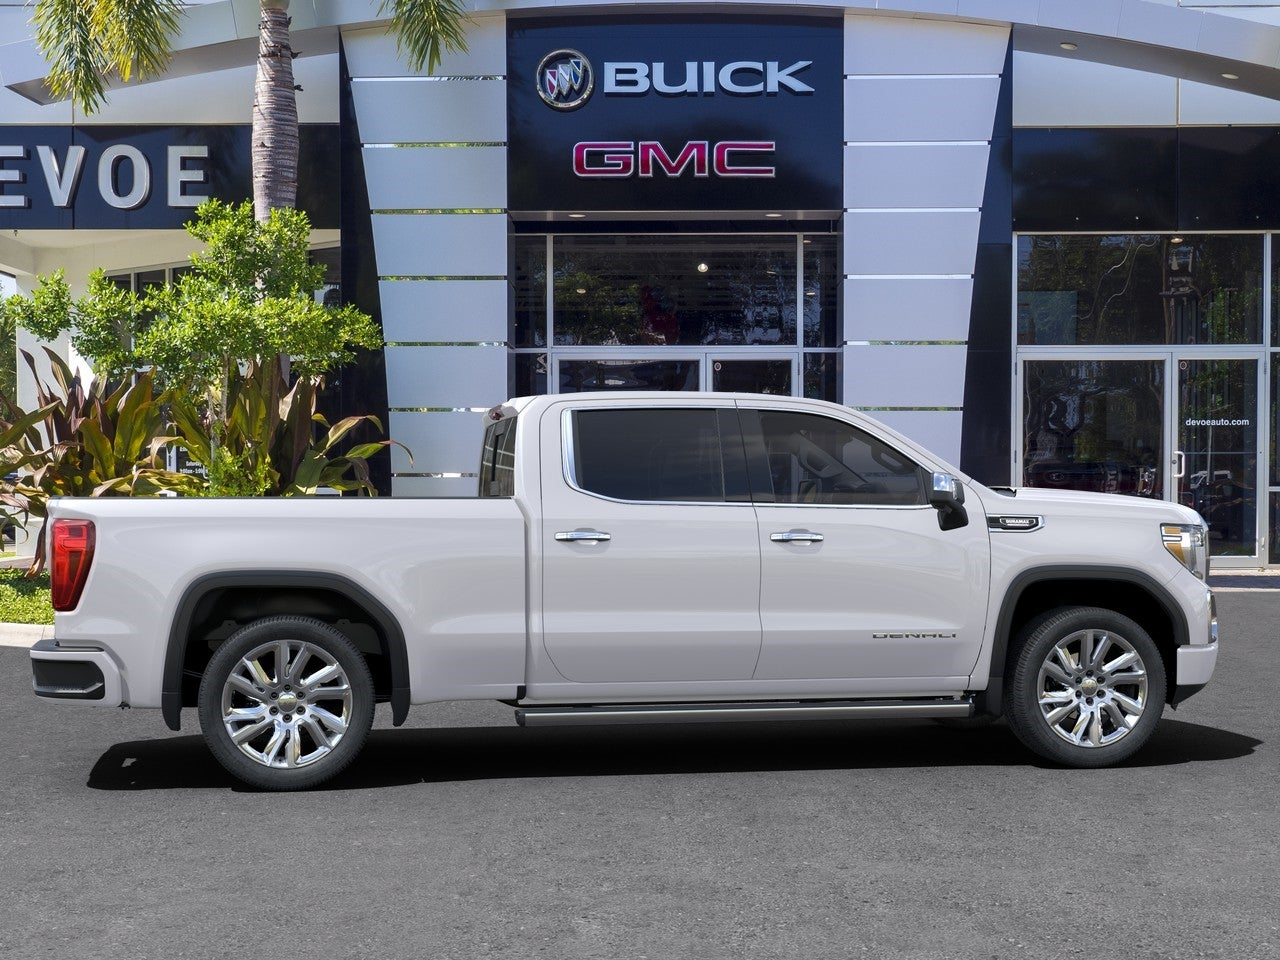 2021 GMC Sierra 1500 Crew Cab 4x4, Pickup #T21162 - photo 25